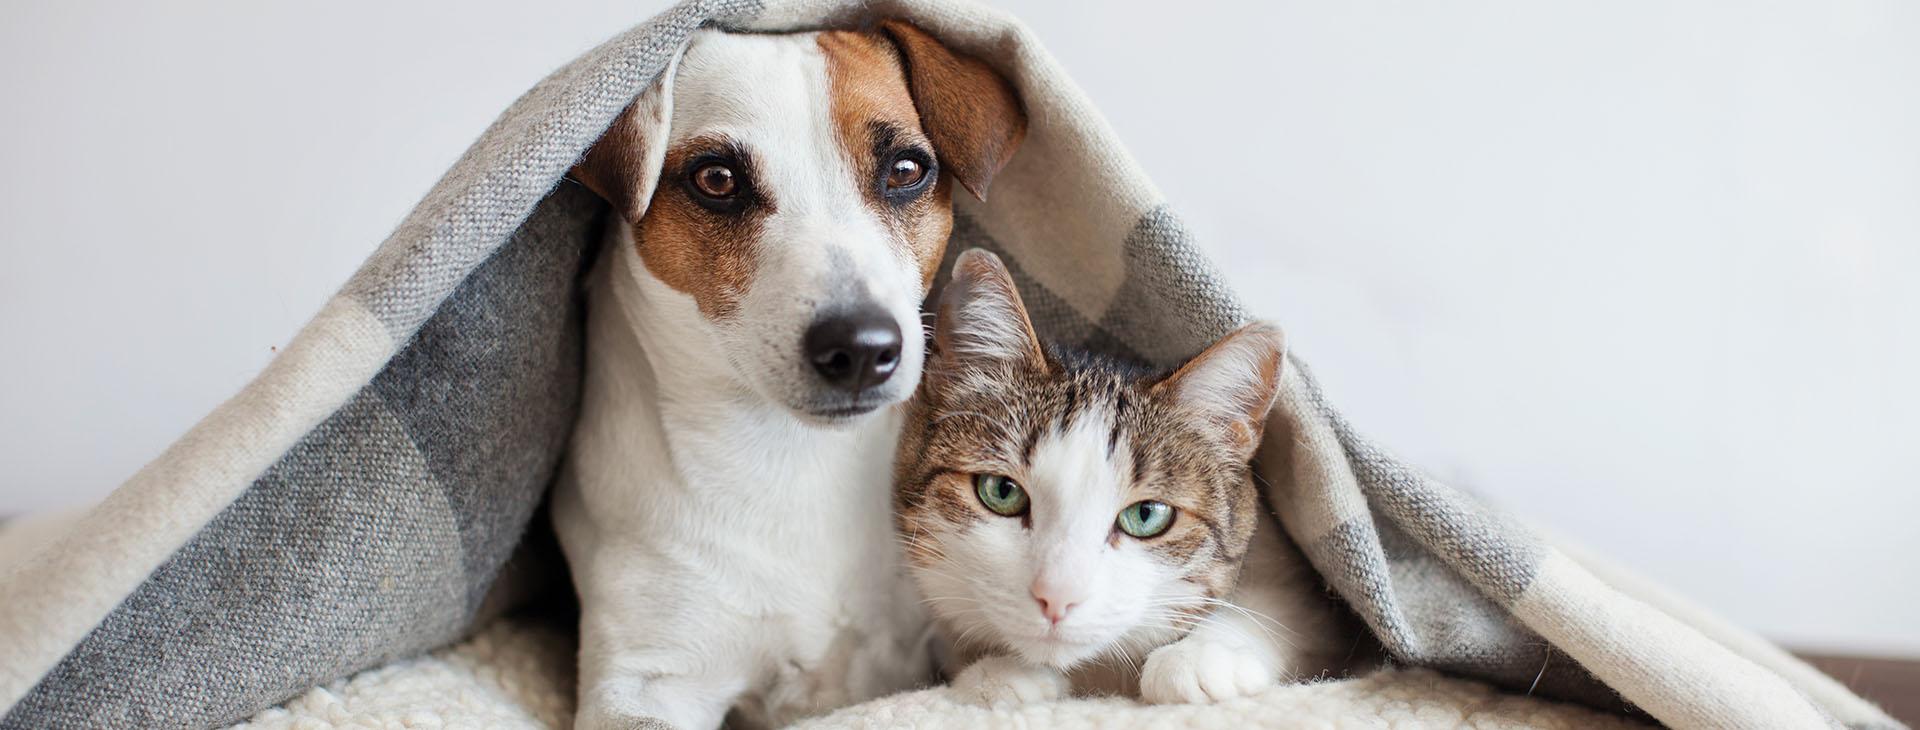 jack russel and cat underneath blanket on couch